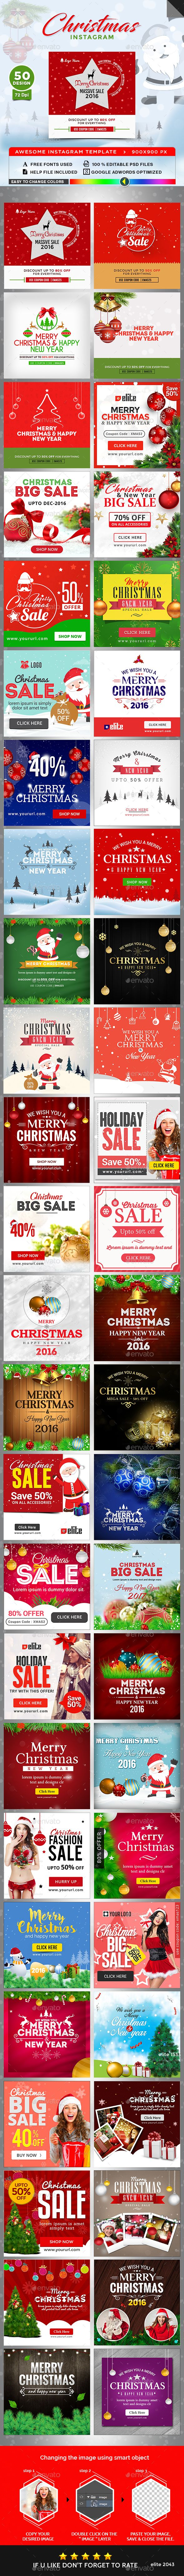 Christmas Instagram Banners Templates - 50 Designs